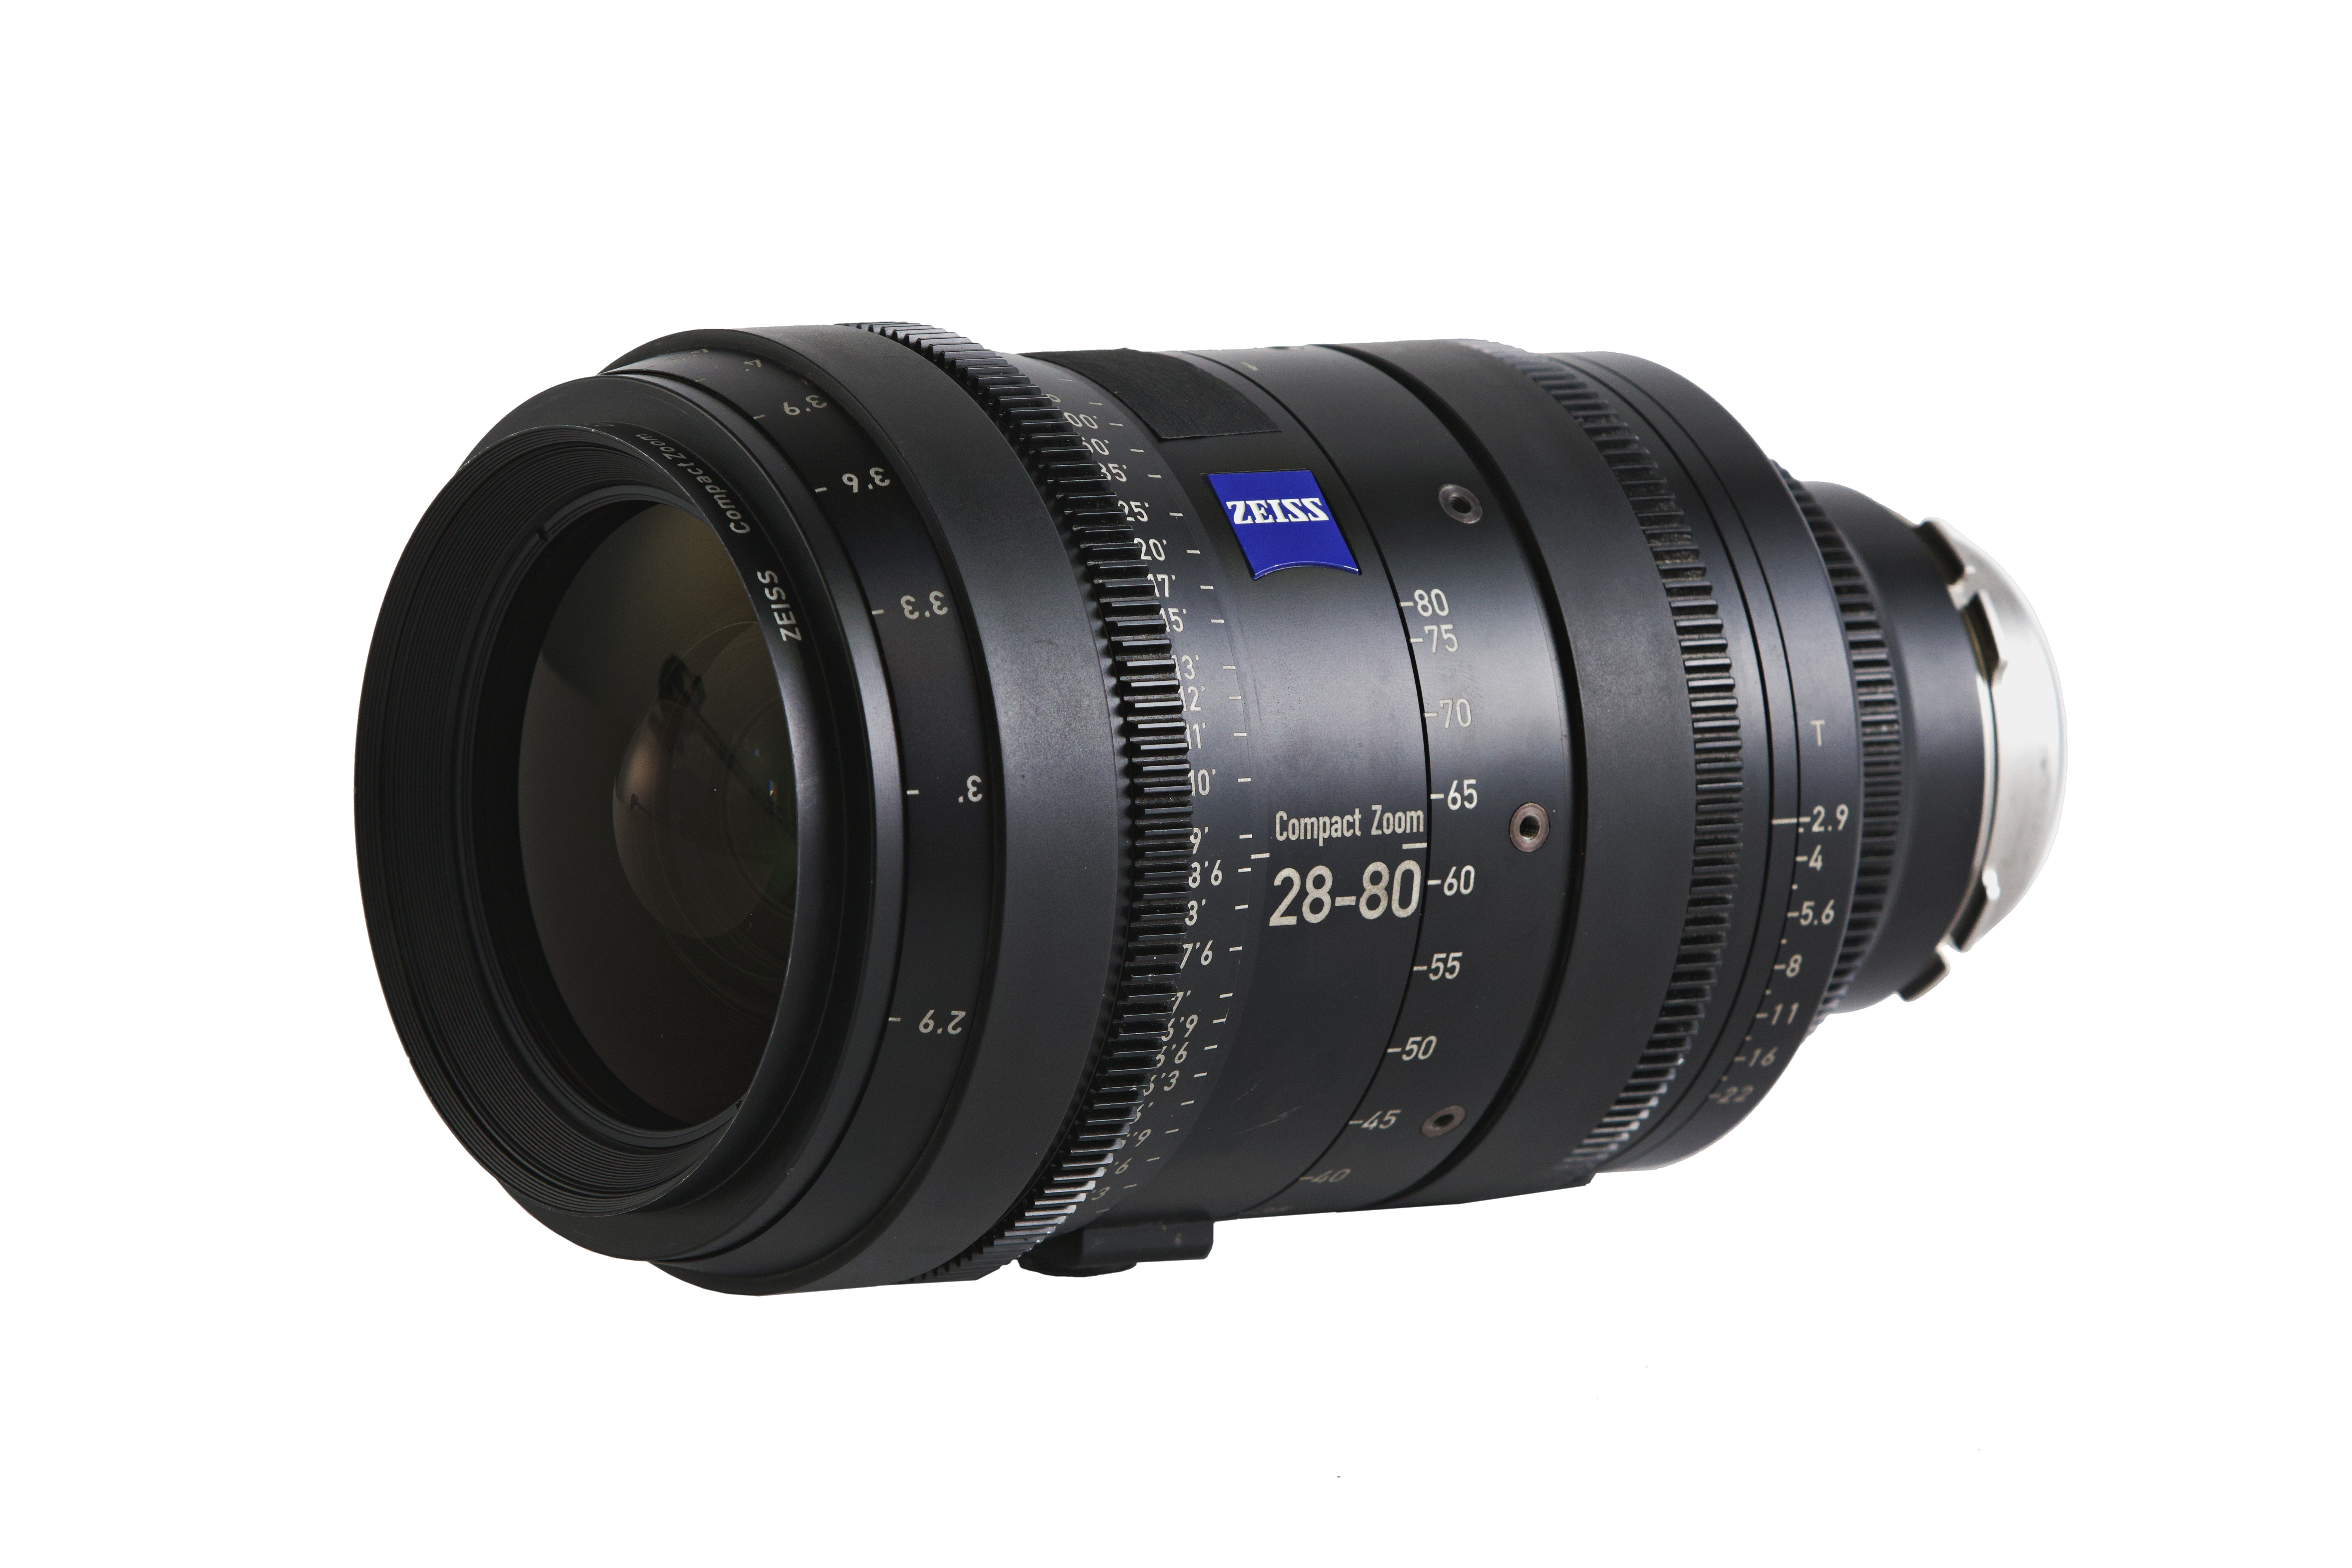 Zeiss 28-80mm T2.9 Compact Zoom